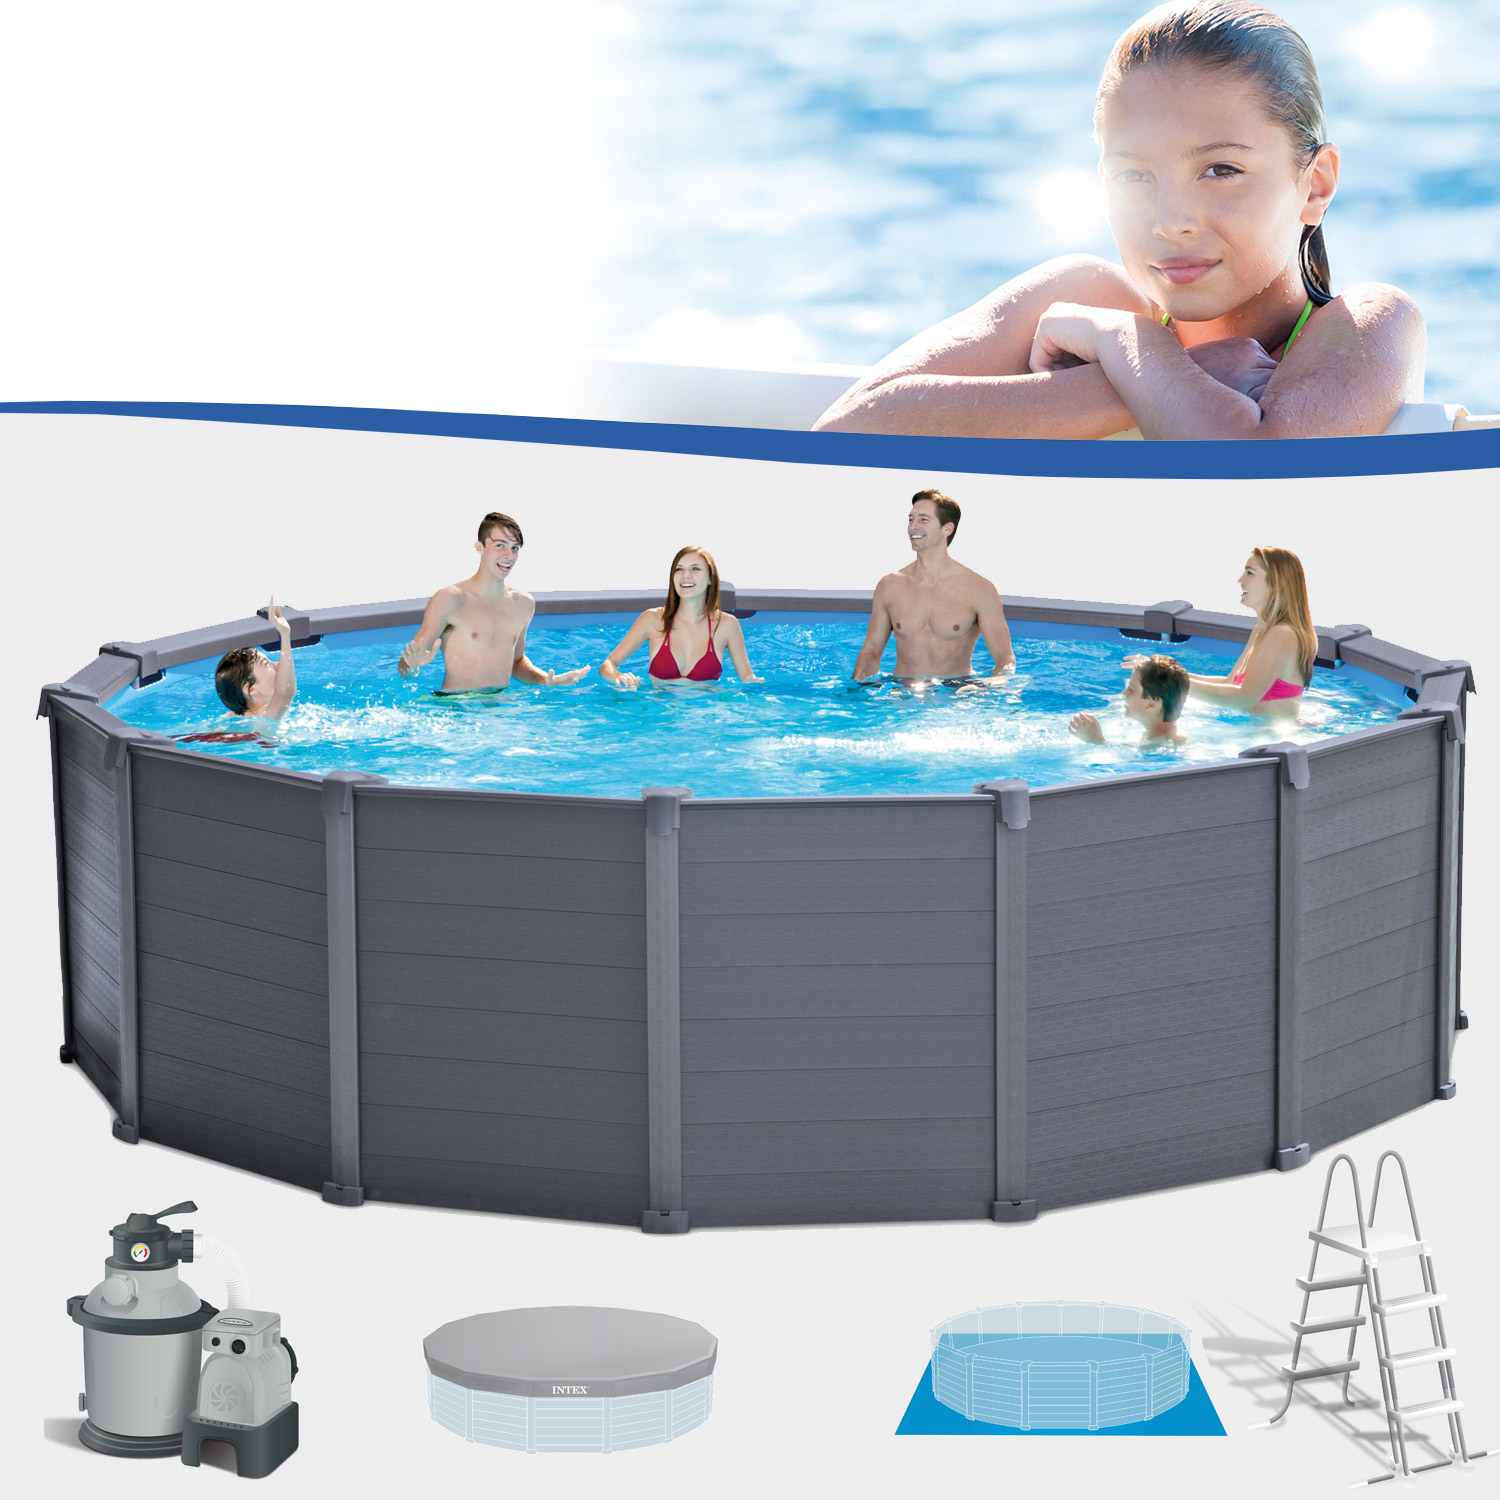 Intex 478x124 telaio piscina piscina piscina con filtro for Filtro piscina intex